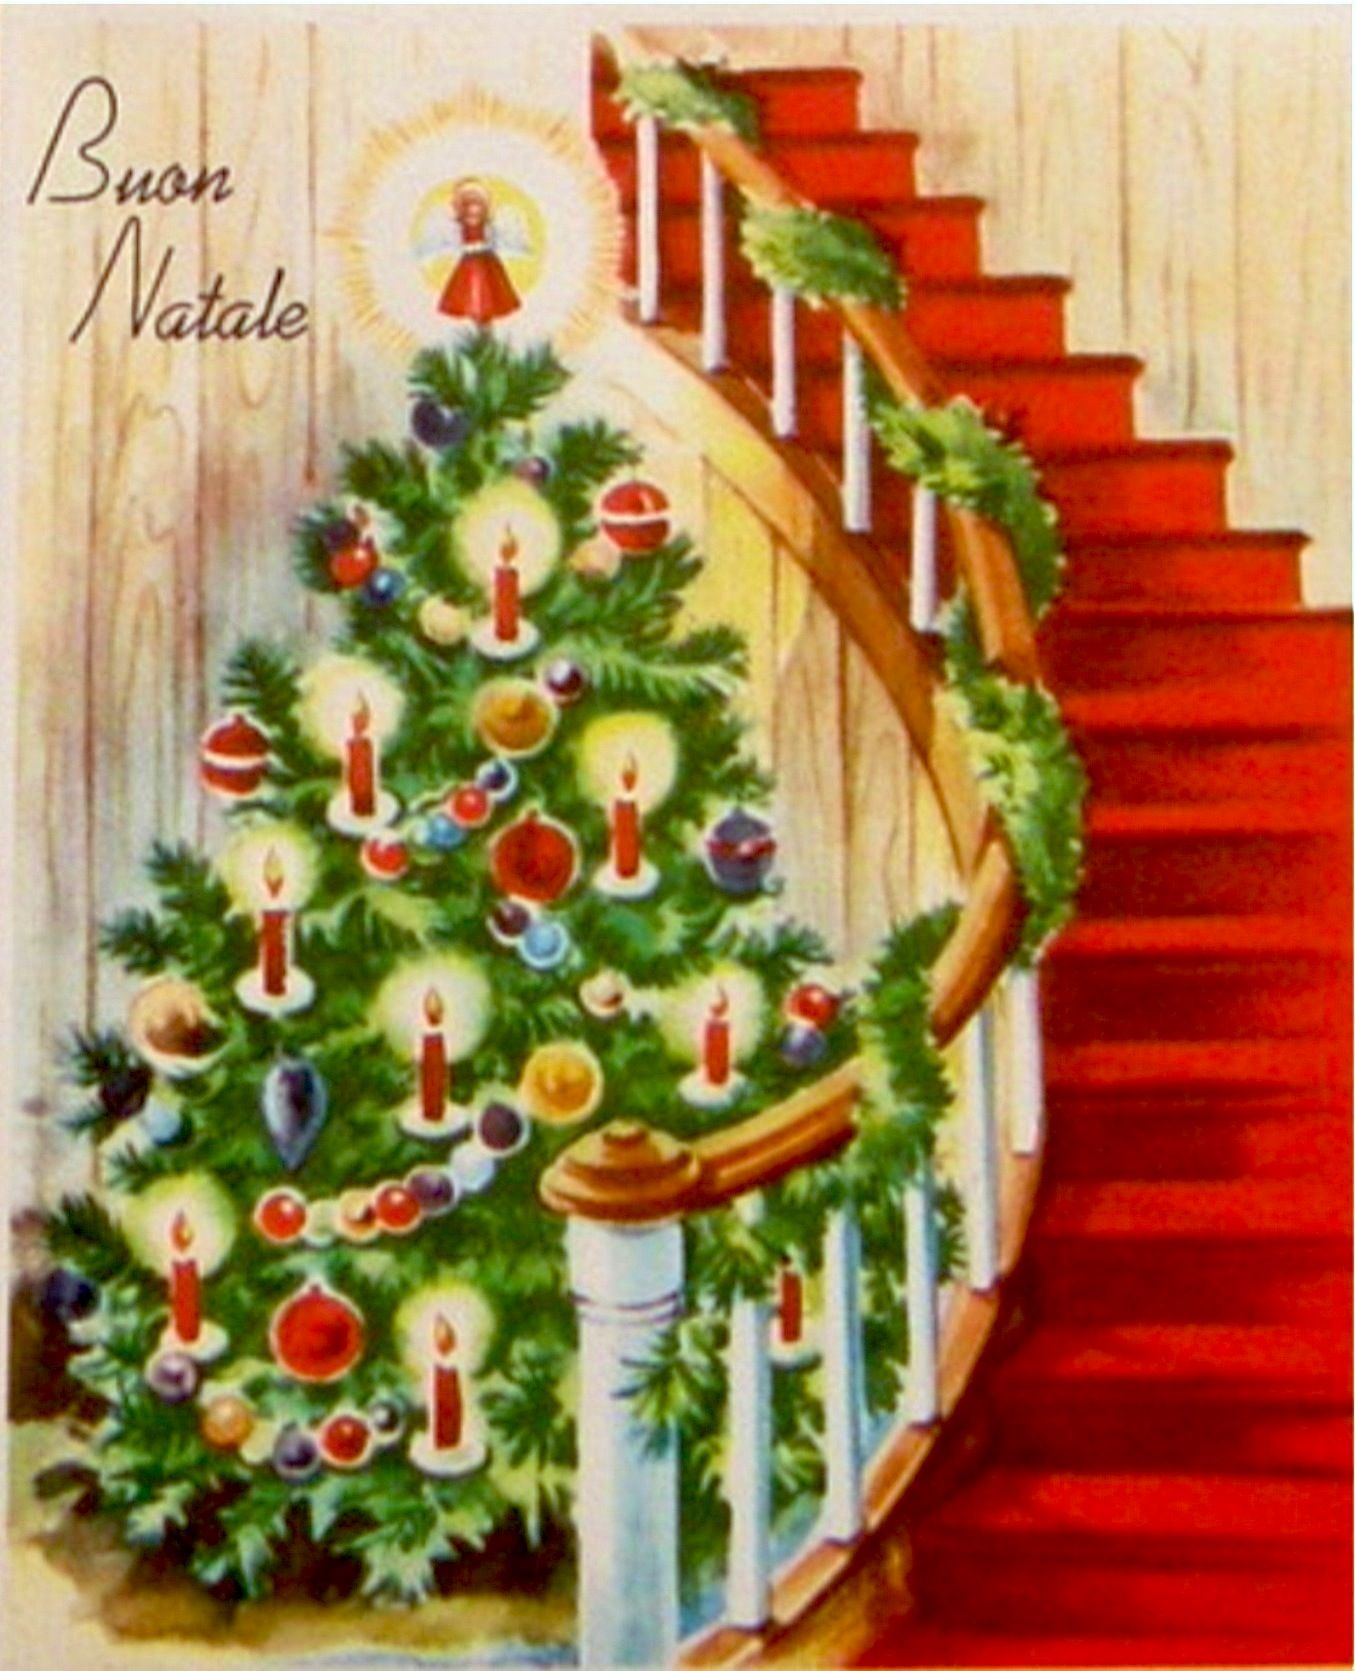 Merry Christmas Postals Nadalenques Vintage Pinterest Merry